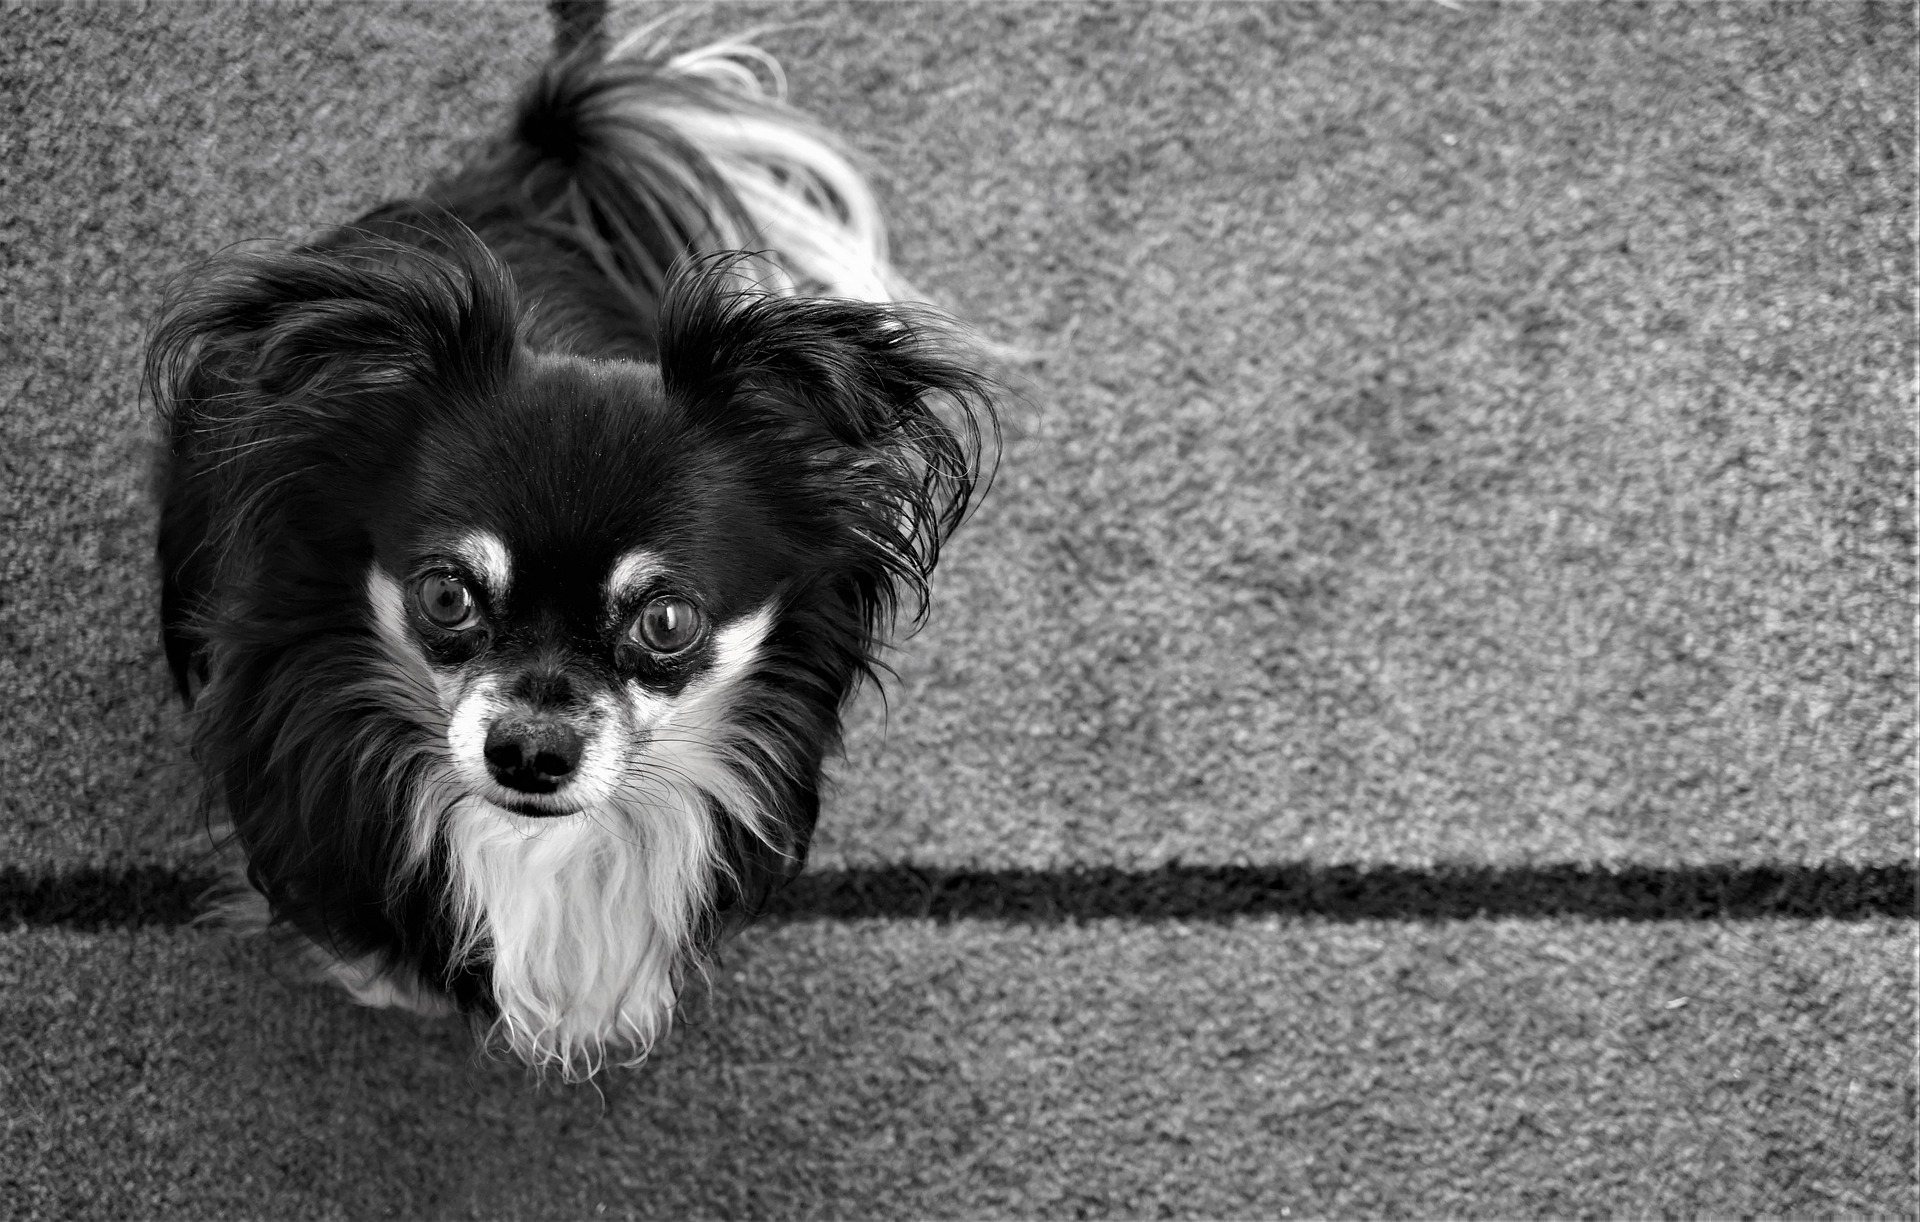 chihuahua sitting on gray carpet looks sorry for causing damage